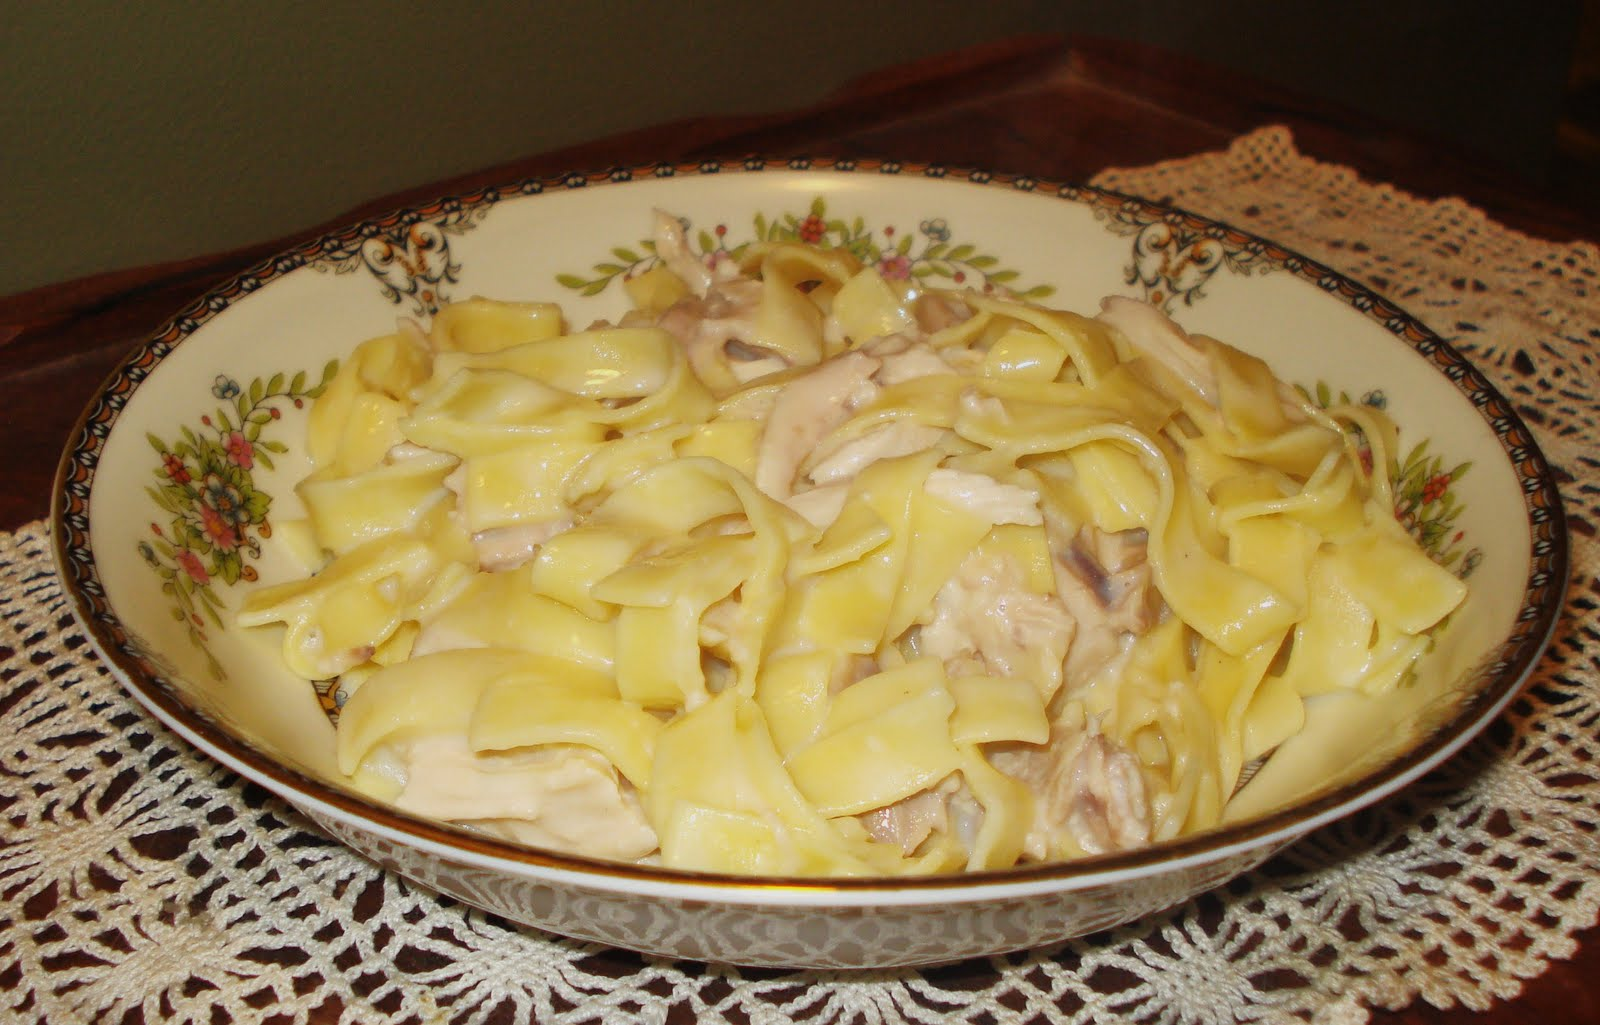 ... Mennonite Cooking: The Mennonite tries Methodist: Chicken and Noodles